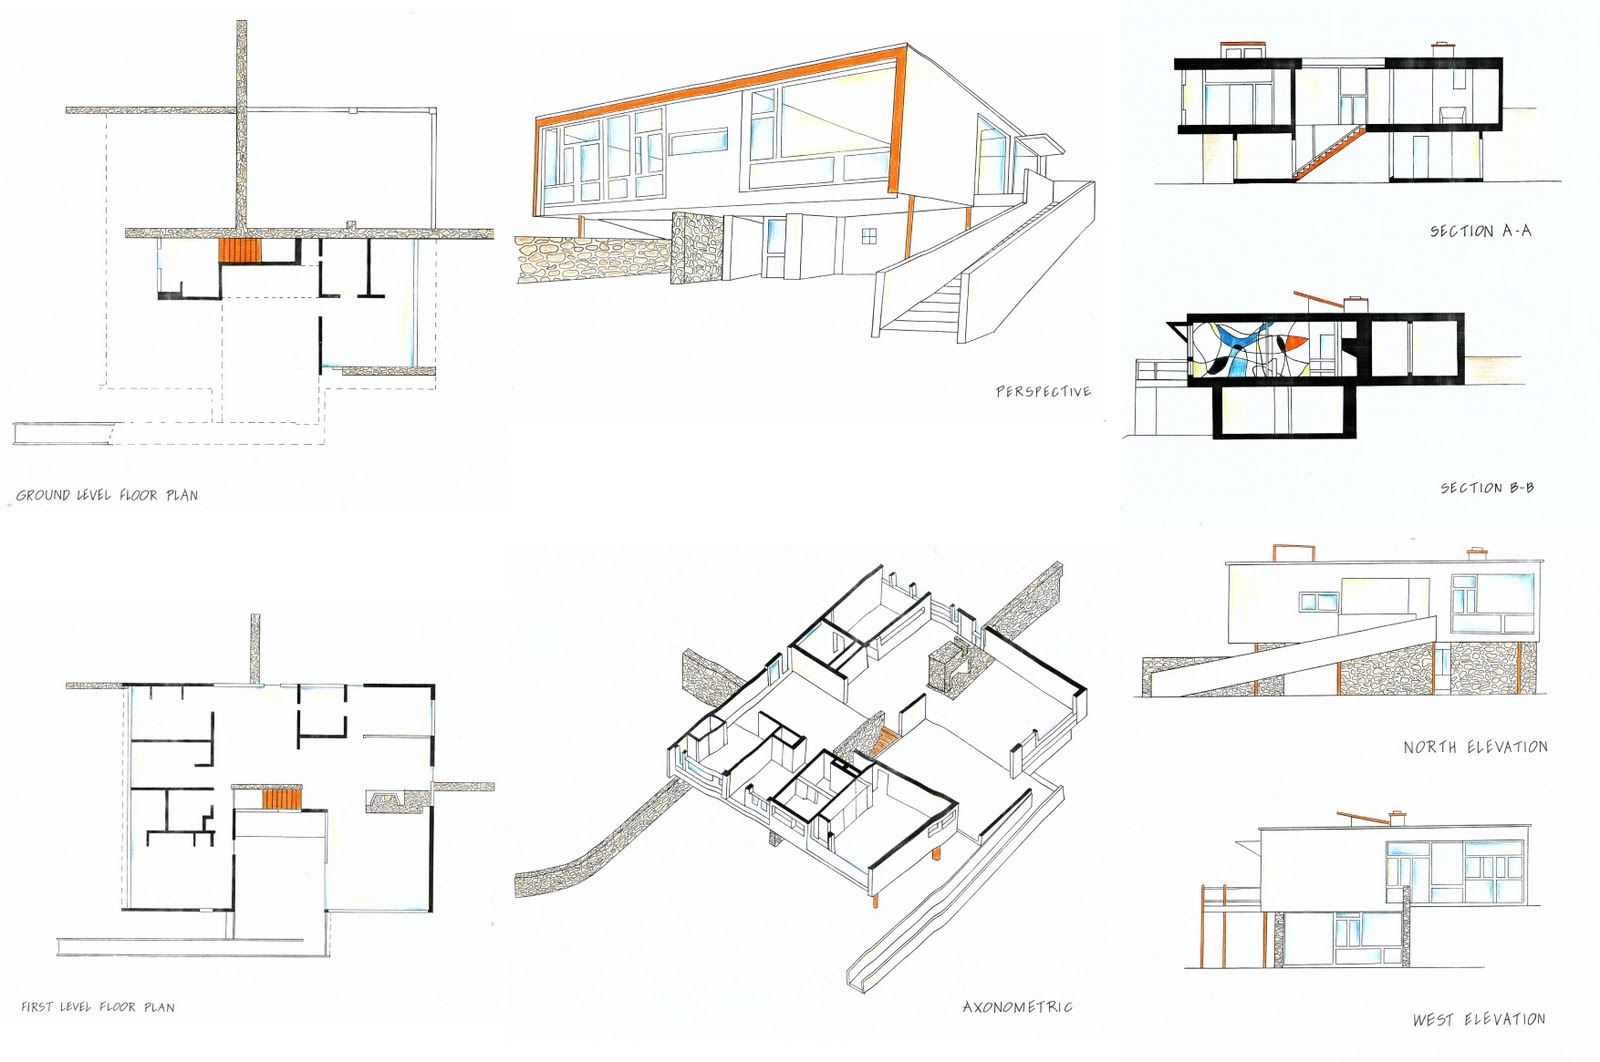 207024914097202122 besides Texas Hill Country Modern House Design as well  additionally Rose Seidler House Site Plan further Sunday August 11th Open Houses. on pool house plans with porches